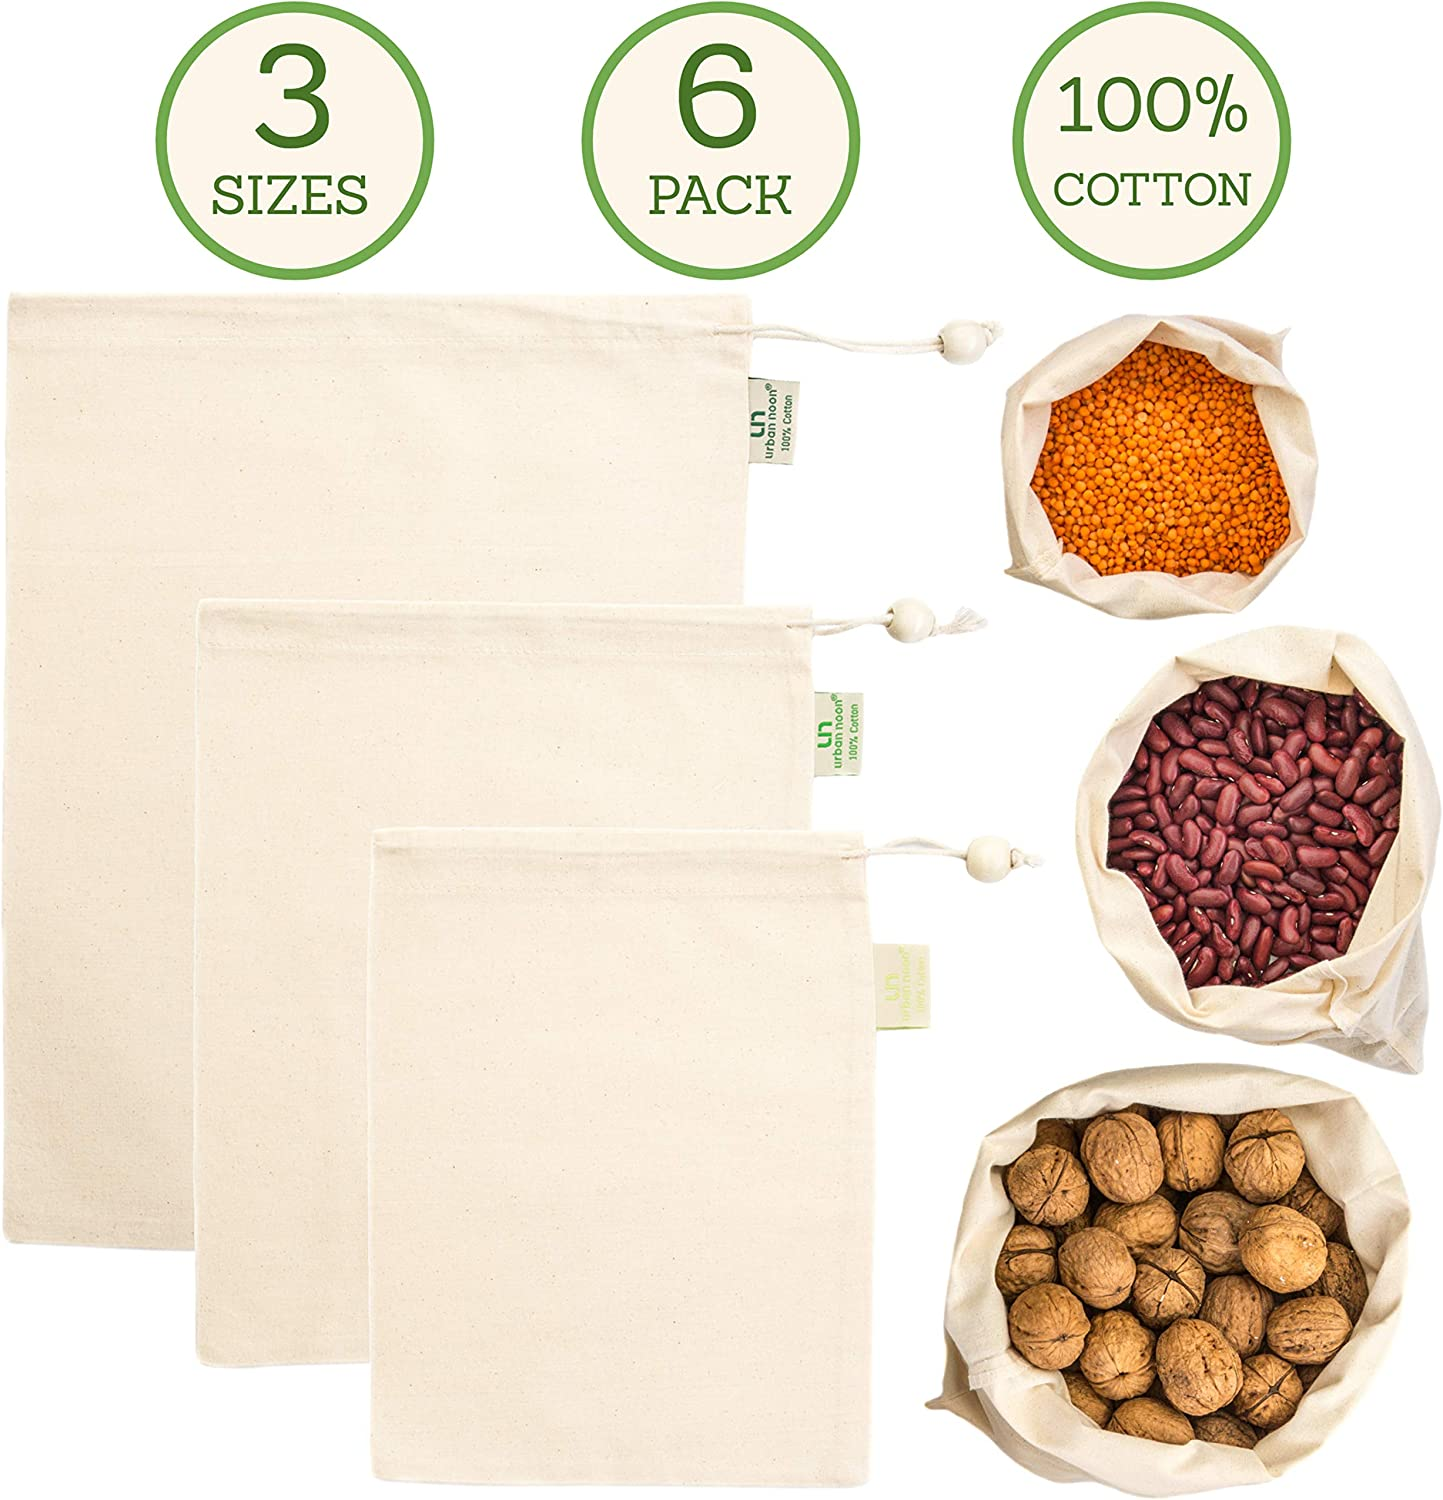 Muslin Produce Bags - Organic Cotton Reusable Eco Bag - 3 Sizes (Large, Medium, Small) in Set of 6 - Strong - with Drawstring - Tare Weight on Tag - Grocery and Storage Food Bag